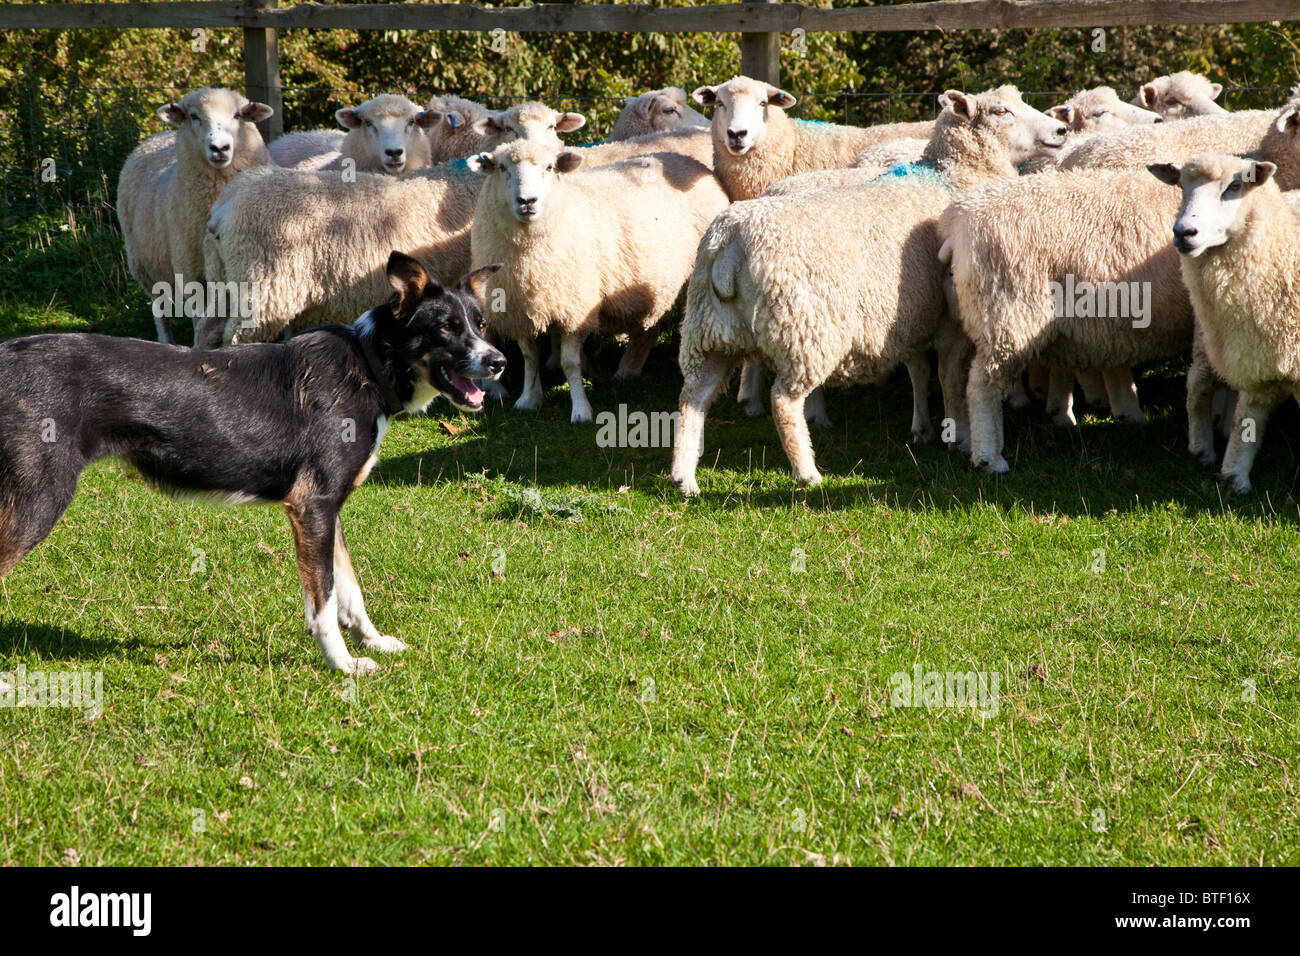 A border collie sheepdog controlling a flock of Romney sheep in a field against the fence - Stock Image